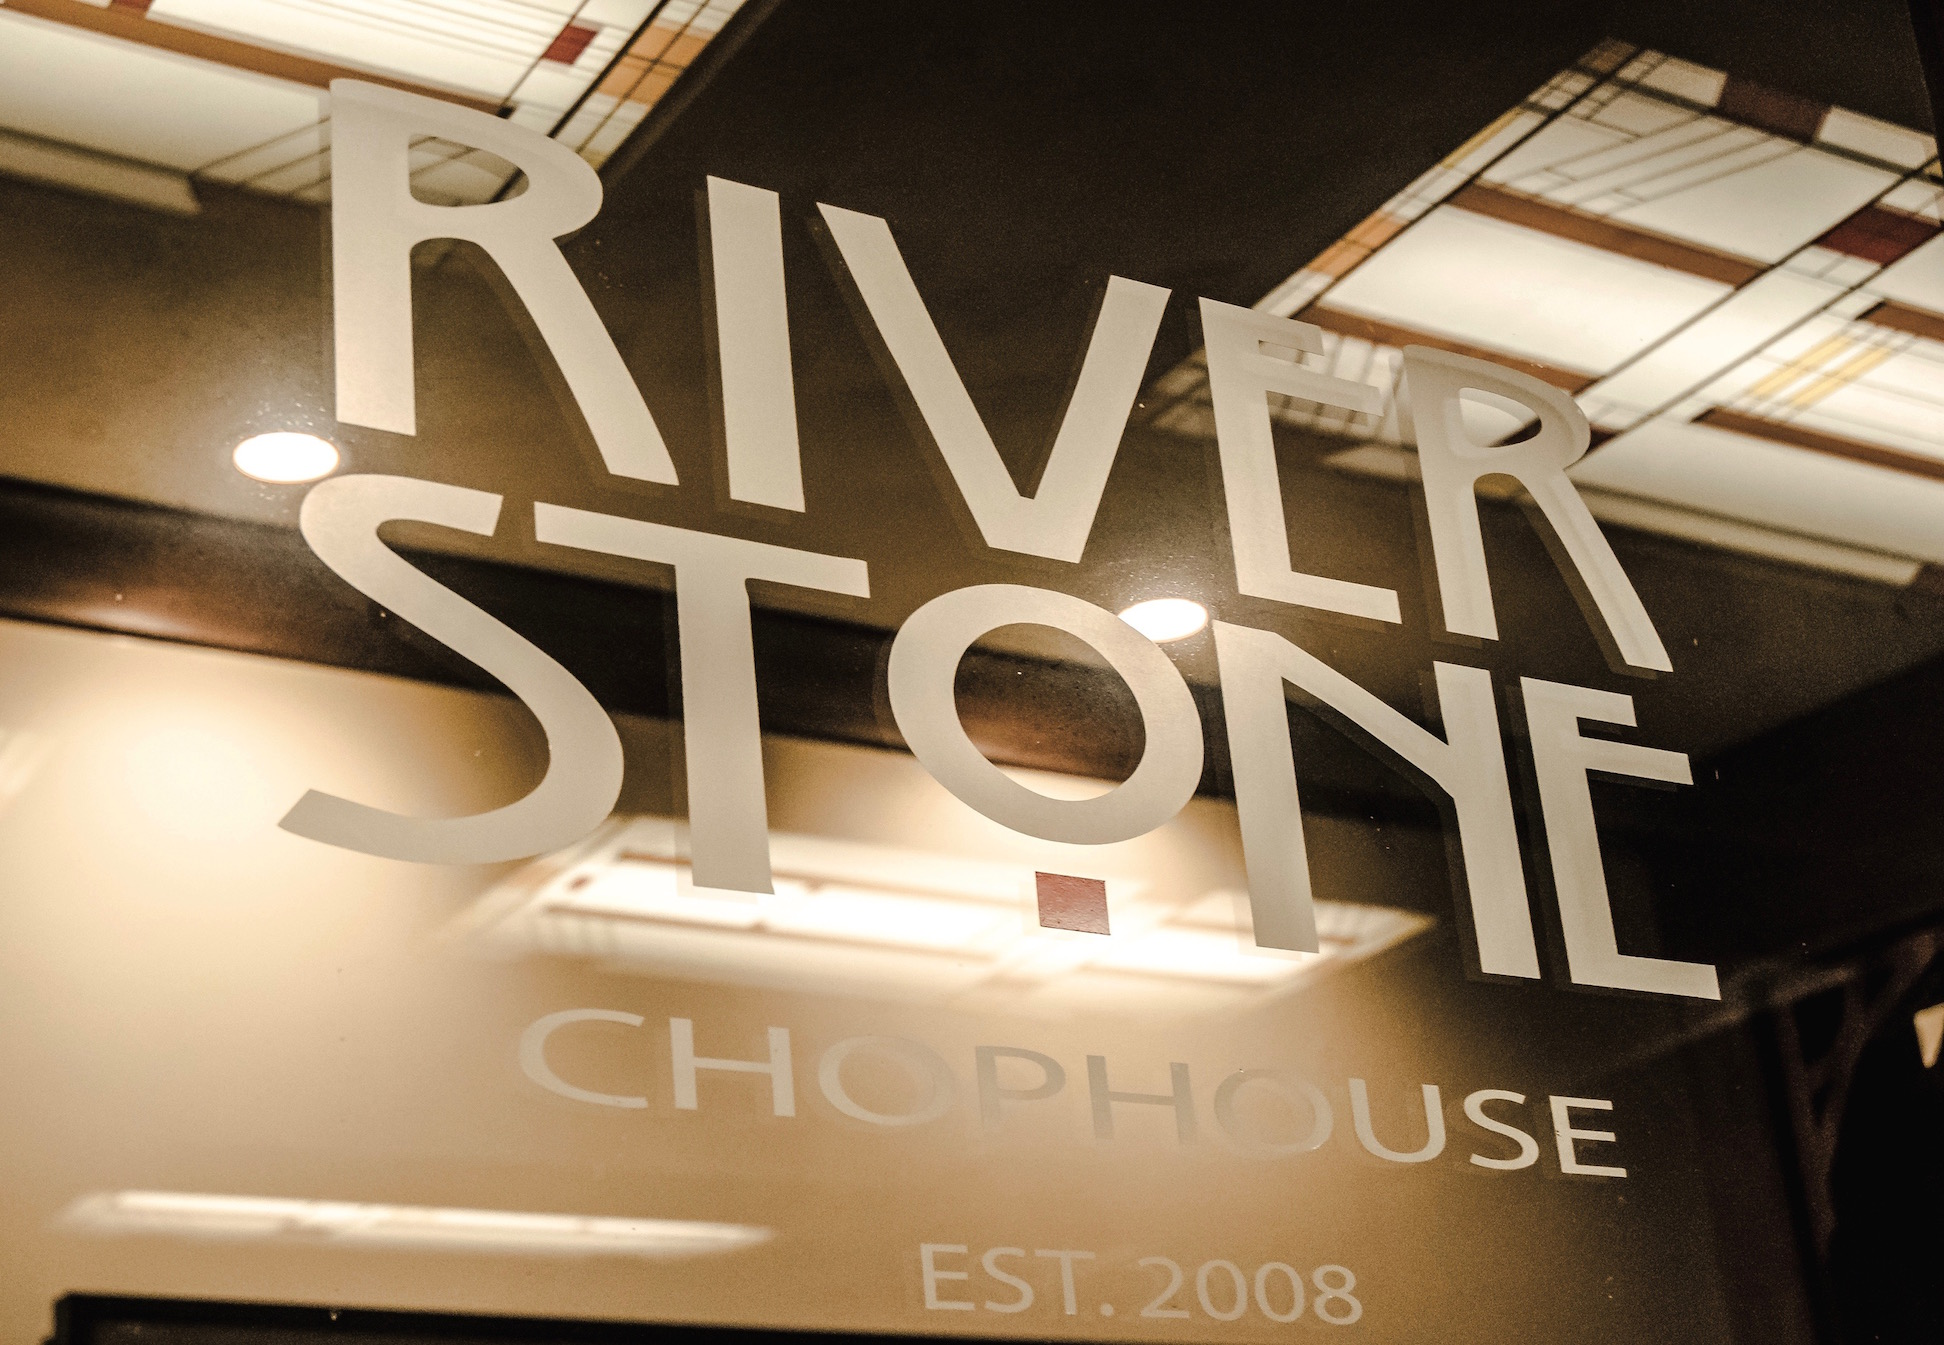 Riverstone Chophouse Suffolk, Virginia